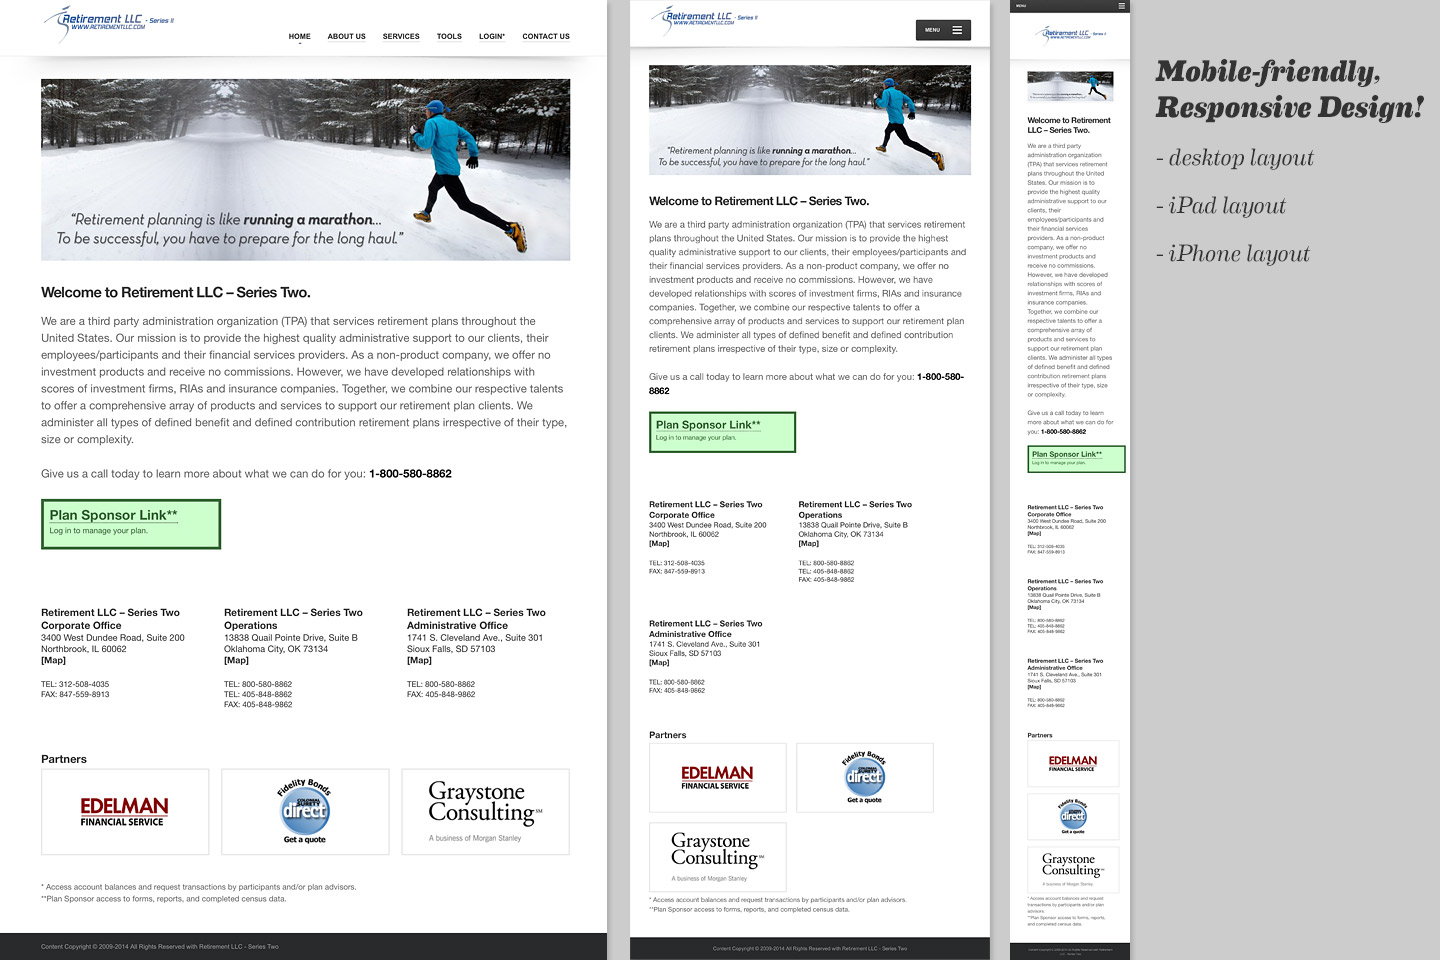 a screen capture comparing the various layout changes that the retirementllc.com responsive homepage undergoes when browser width changes from full desktop, to ipad, to iphone